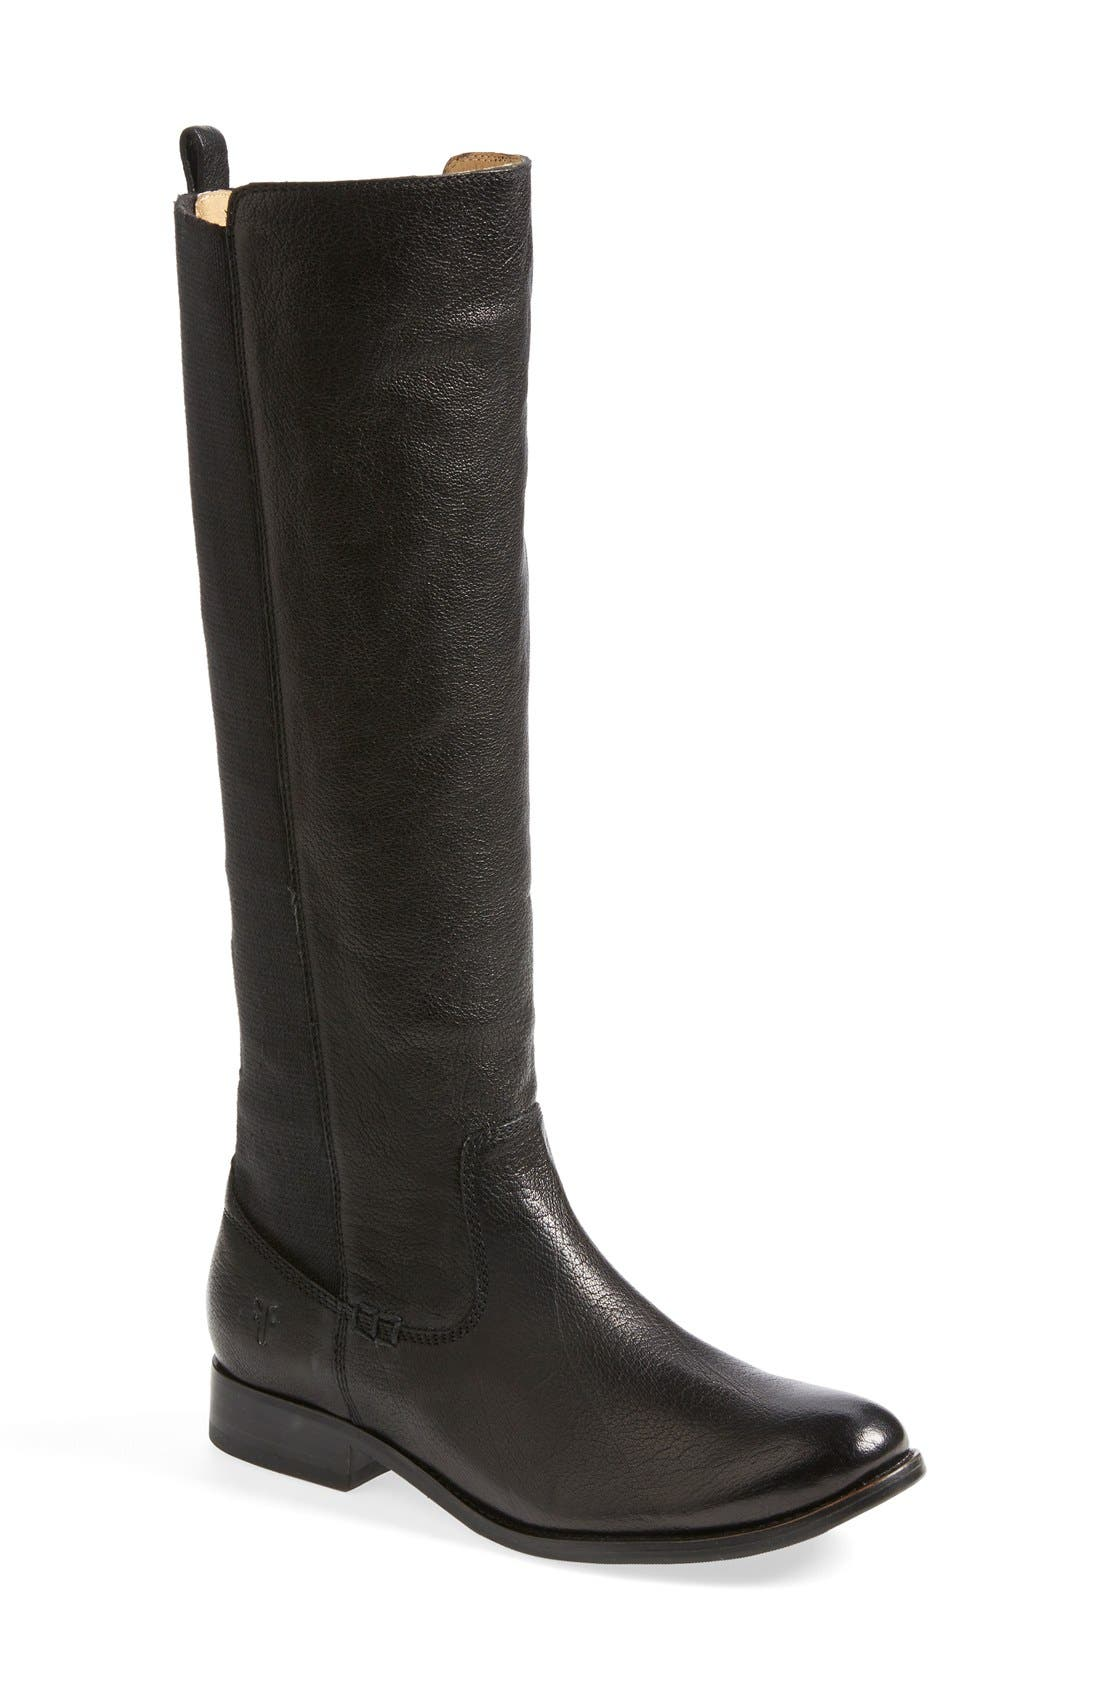 Alternate Image 1 Selected - Frye 'Molly' Gore Leather Boot (Women)